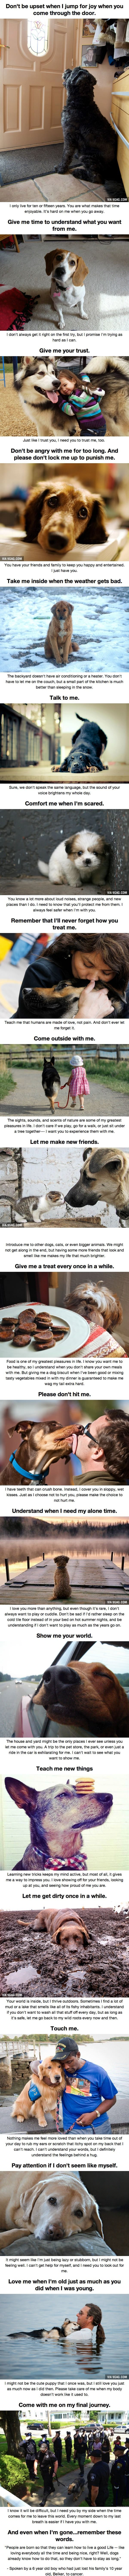 Things your dogs want to tell you